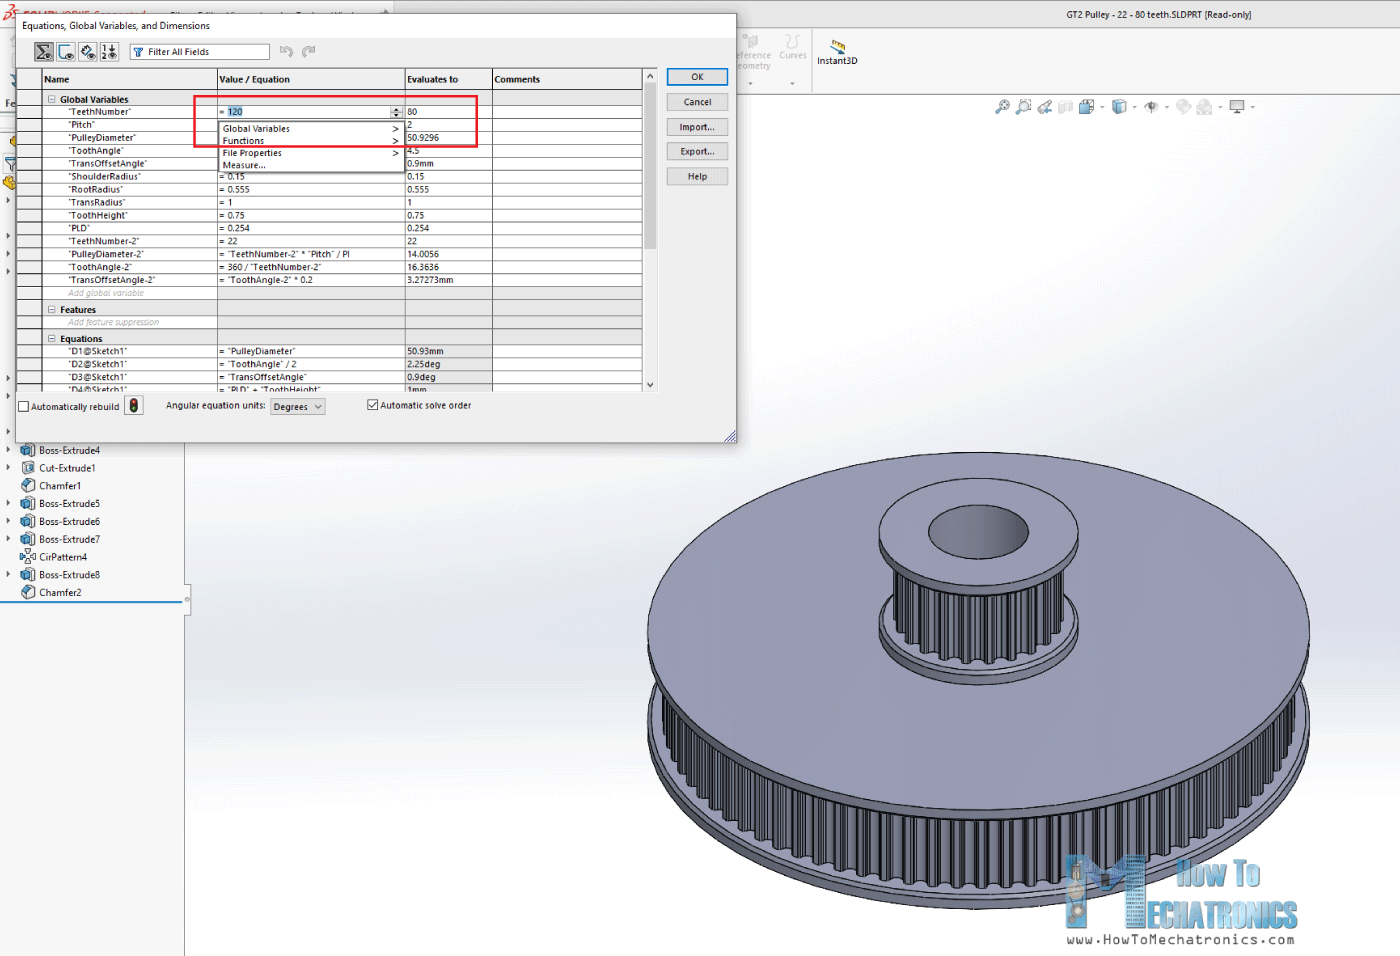 GT2 Pulley with Parametric Design